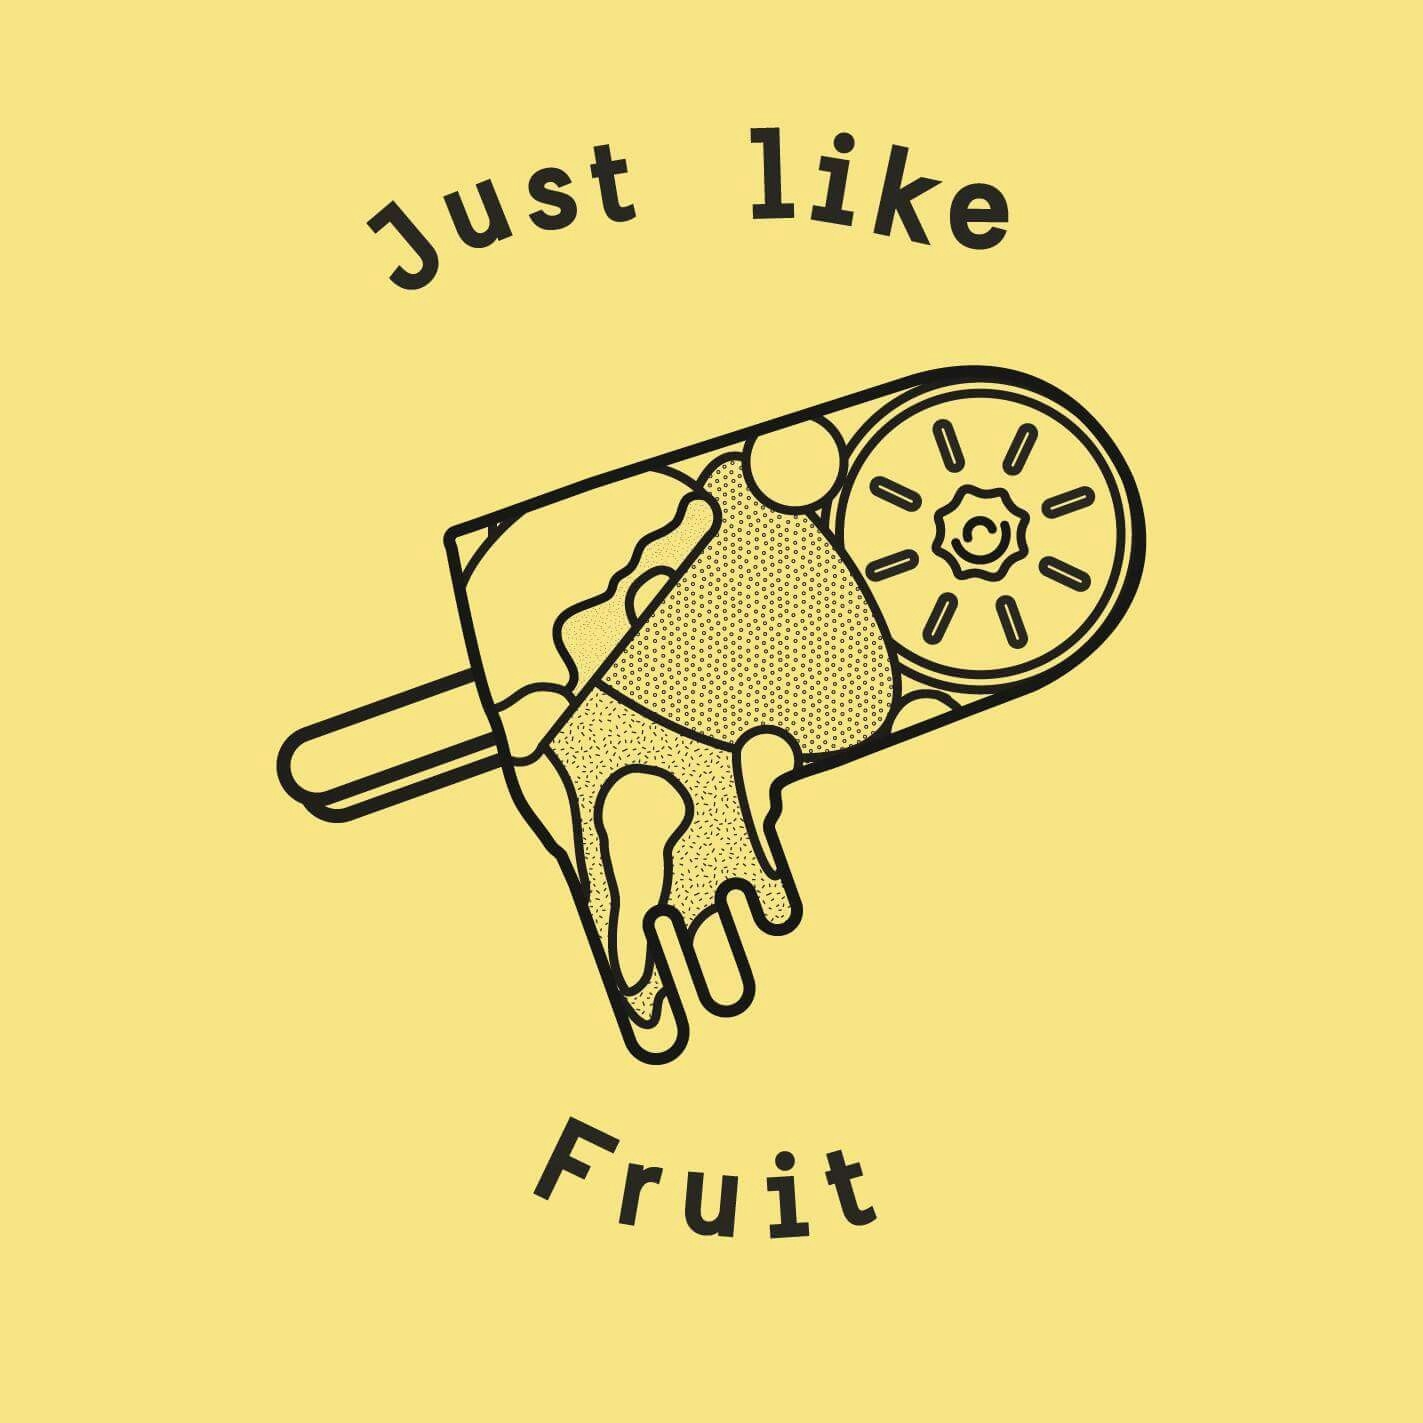 Just Like Fruit